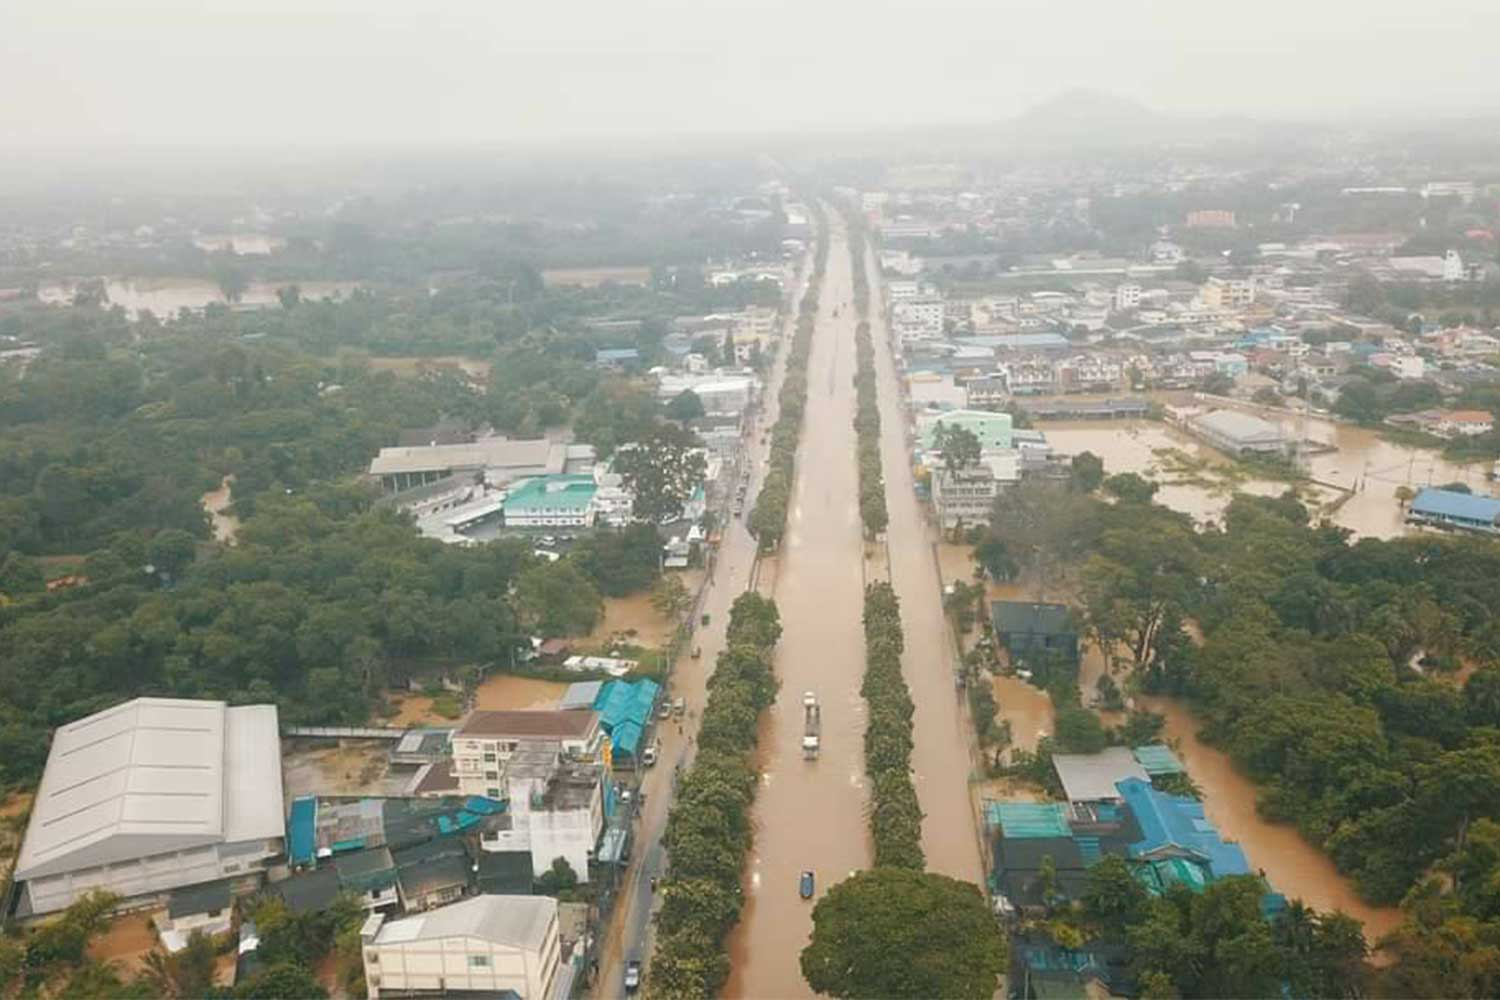 Days of heavy rain and runoff have caused flooding in many areas of Pak Chong district in Nakhon Ratchasima. (Photo: Prasit Tangprasert)